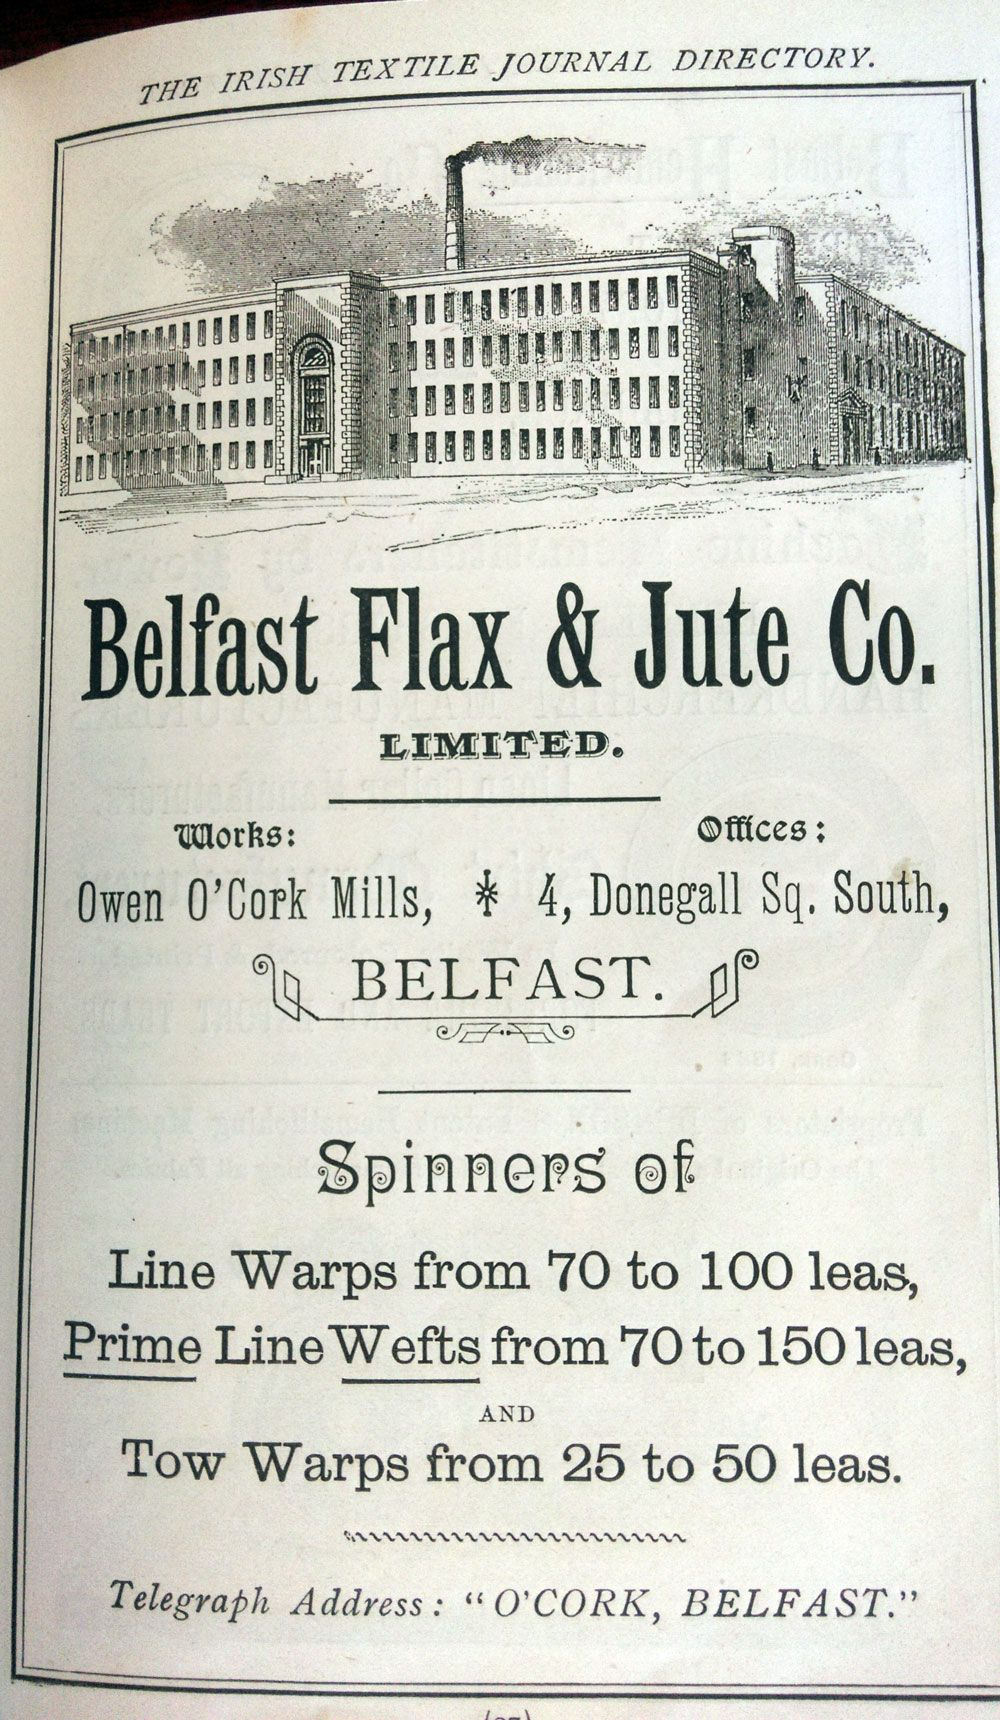 Advertisement for the Belfast Flax and Jute Company from the Irish